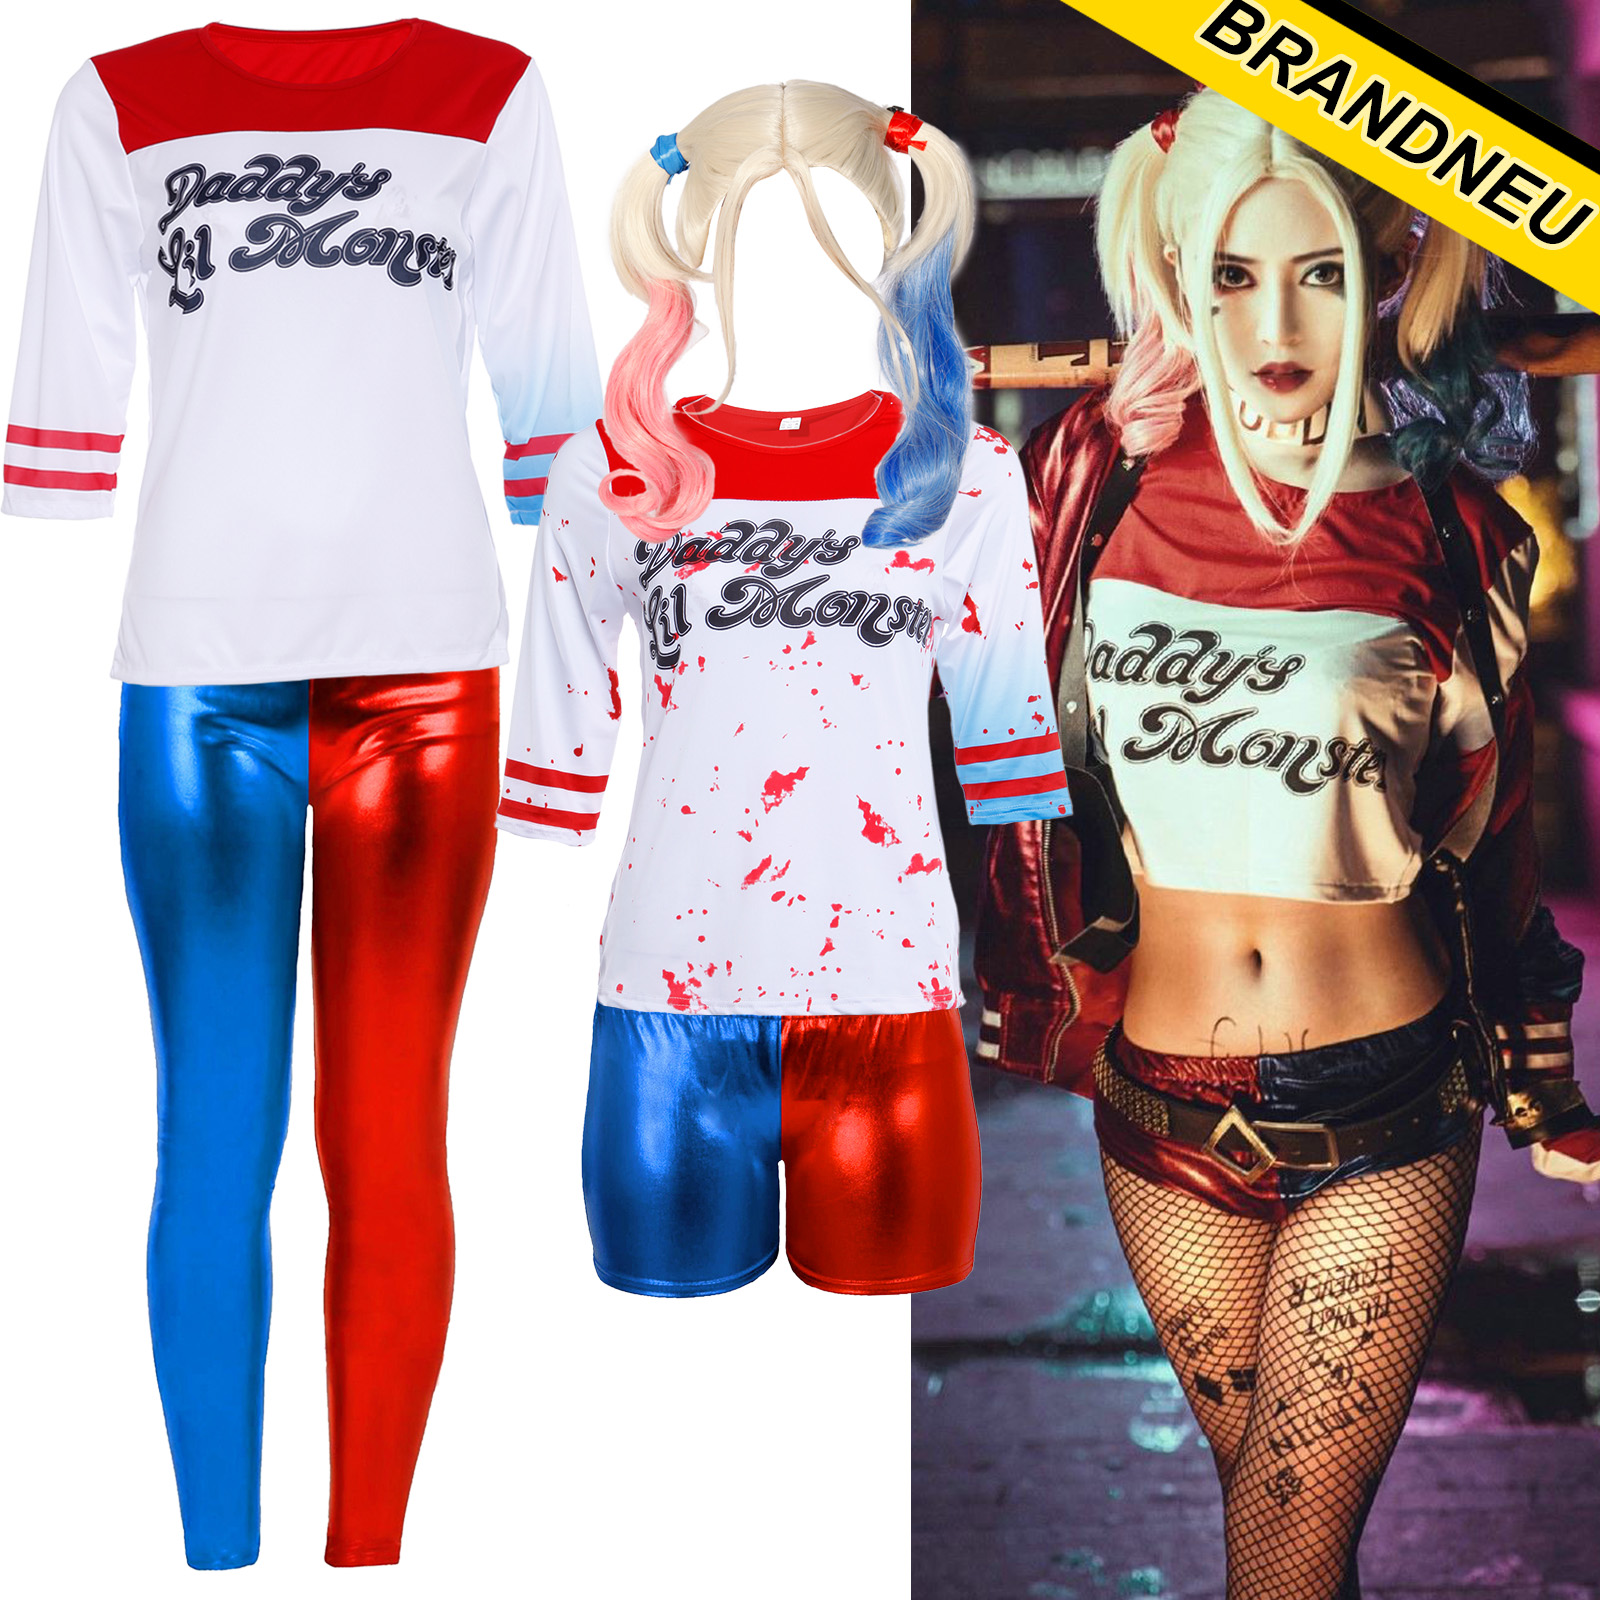 halloween cosplay t shirt hose pants kostum joker verkleidung weiss shirt